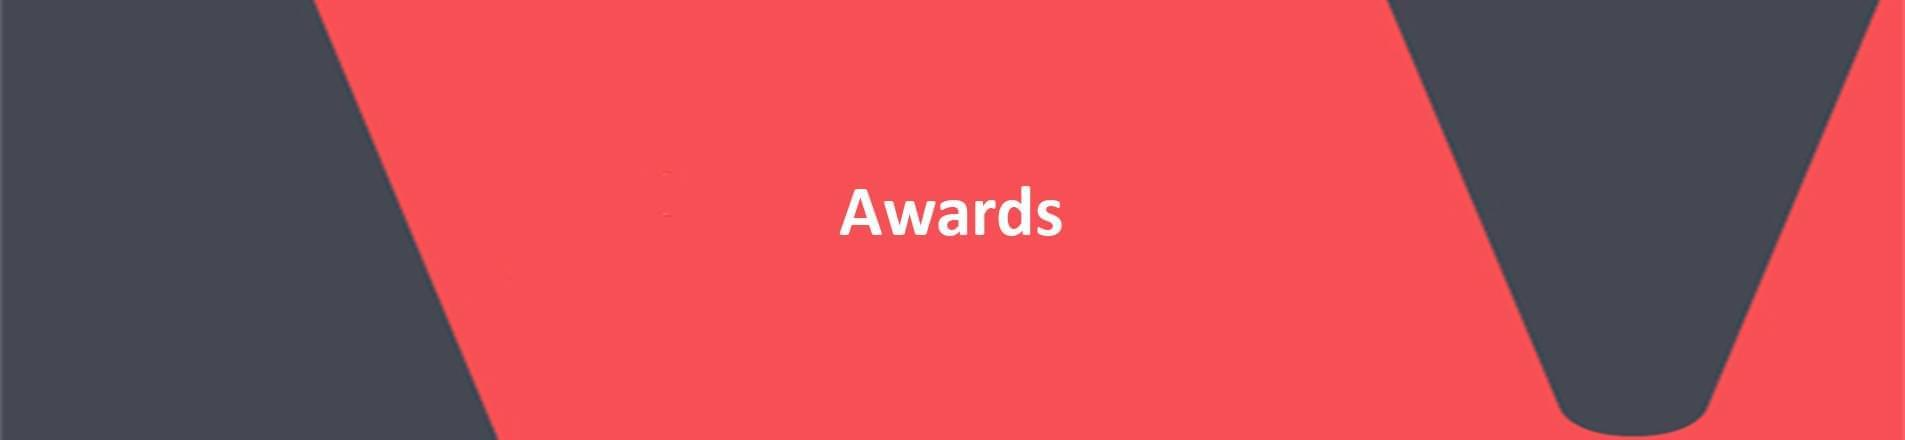 "Image of ""Awards"" text"